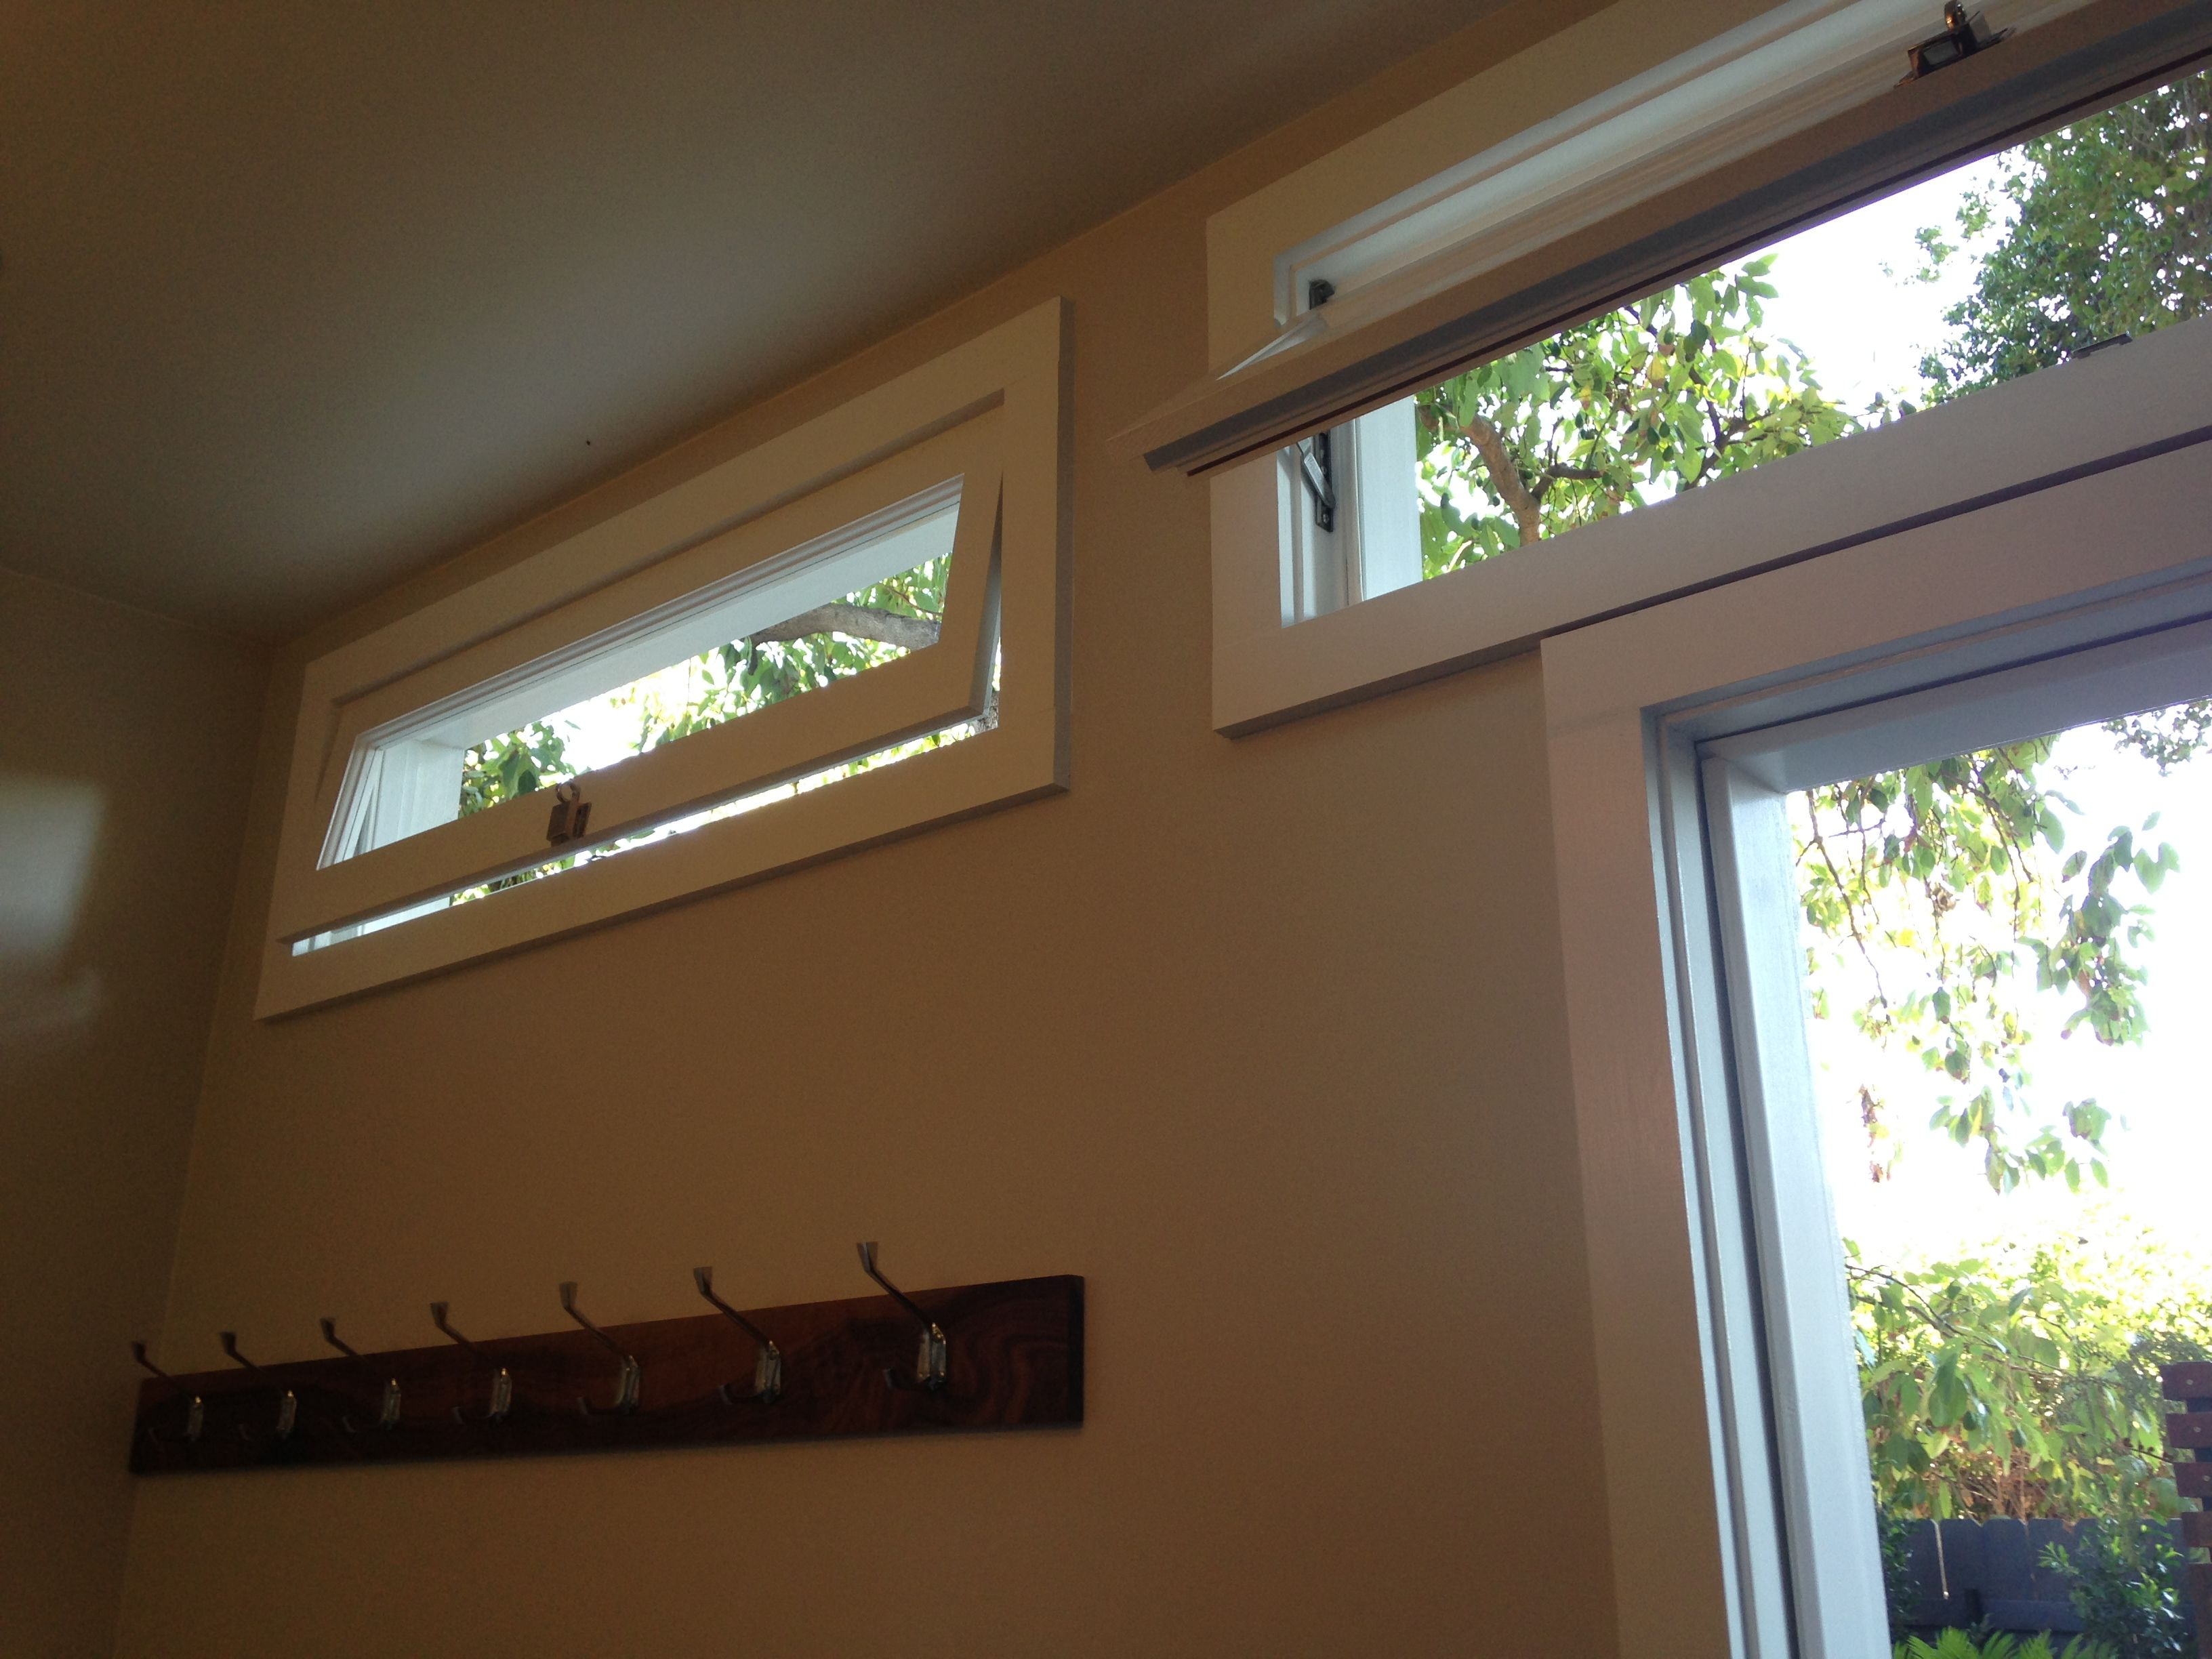 Awning window awning window in bathroom for Windows in bathrooms ideas